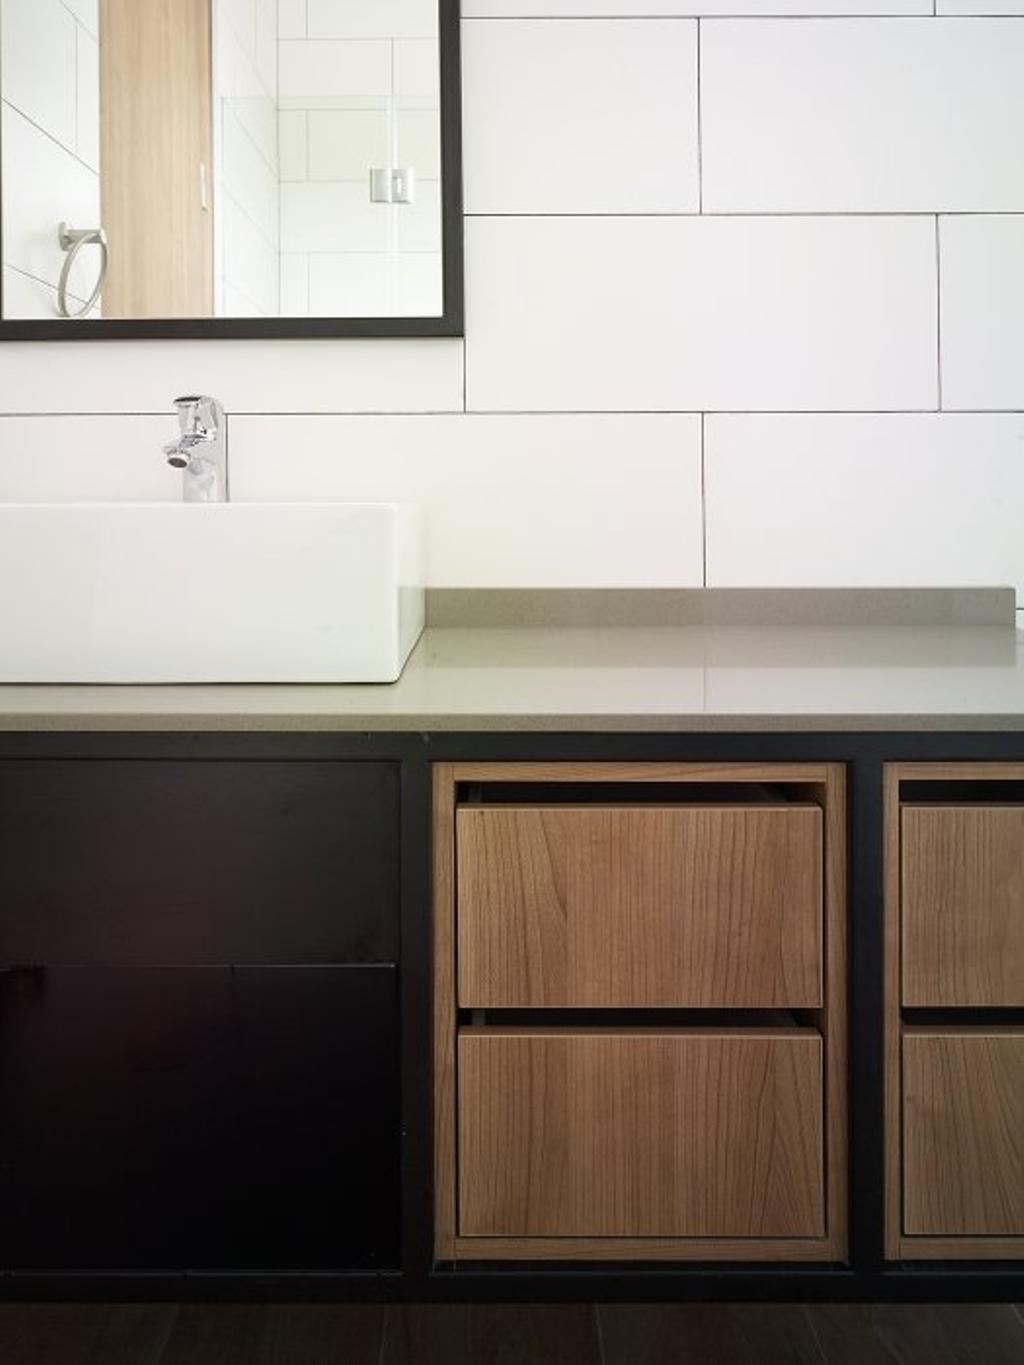 Minimalistic, Landed, House at JM, Architect, OWMF Architecture, Furniture, Sideboard, Molding